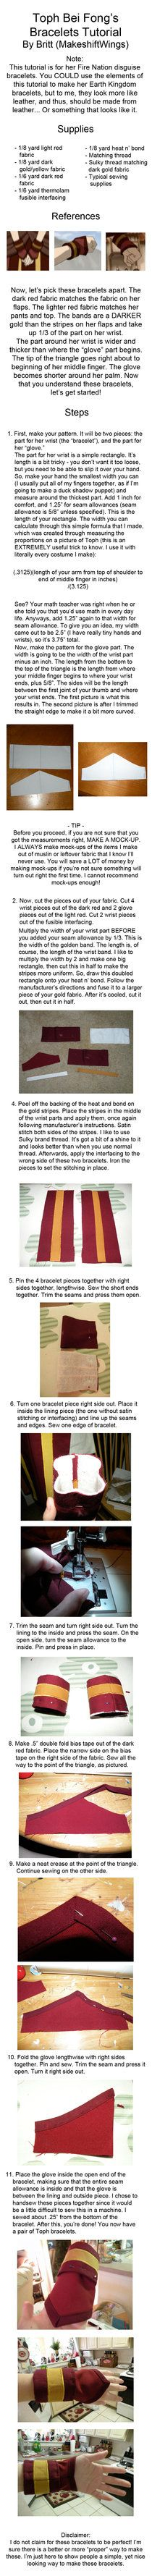 First of hopefully 3 tutorials for Toph's Fire Nation disguise! Here is how to make her bracelet/glove thingys. Toph Cosplay, Cosplay Diy, Cosplay Ideas, Diy Costumes, Costume Ideas, Cosplay Costumes, Halloween Costumes, Costume Tutorial, Cosplay Tutorial